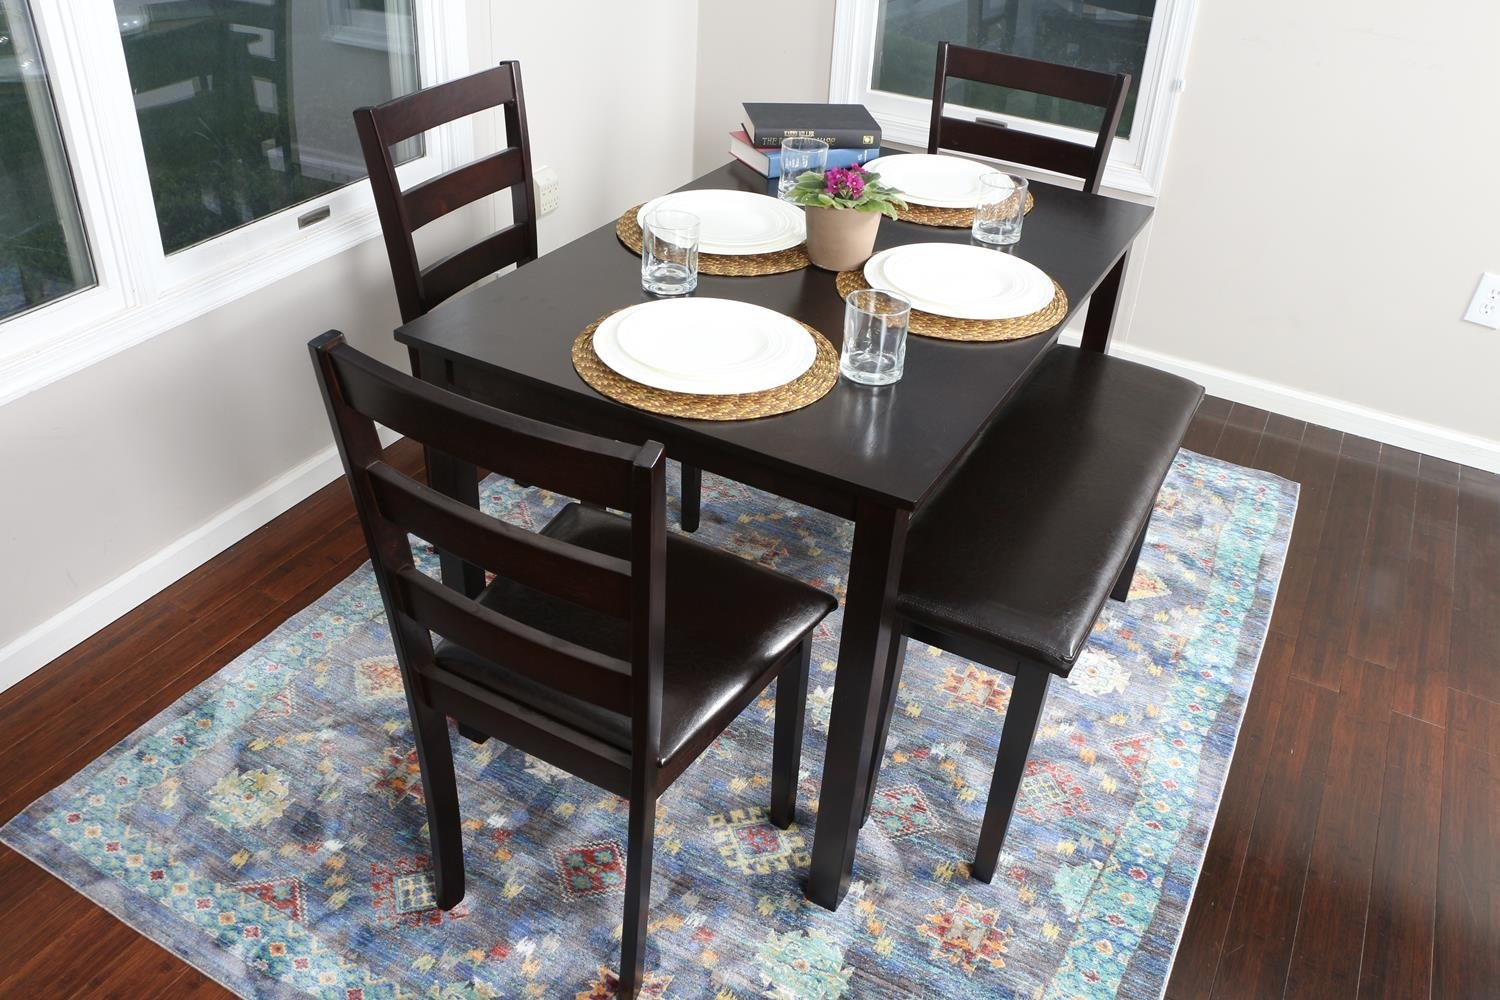 5 kitchen dining table set 1 table 3 leather